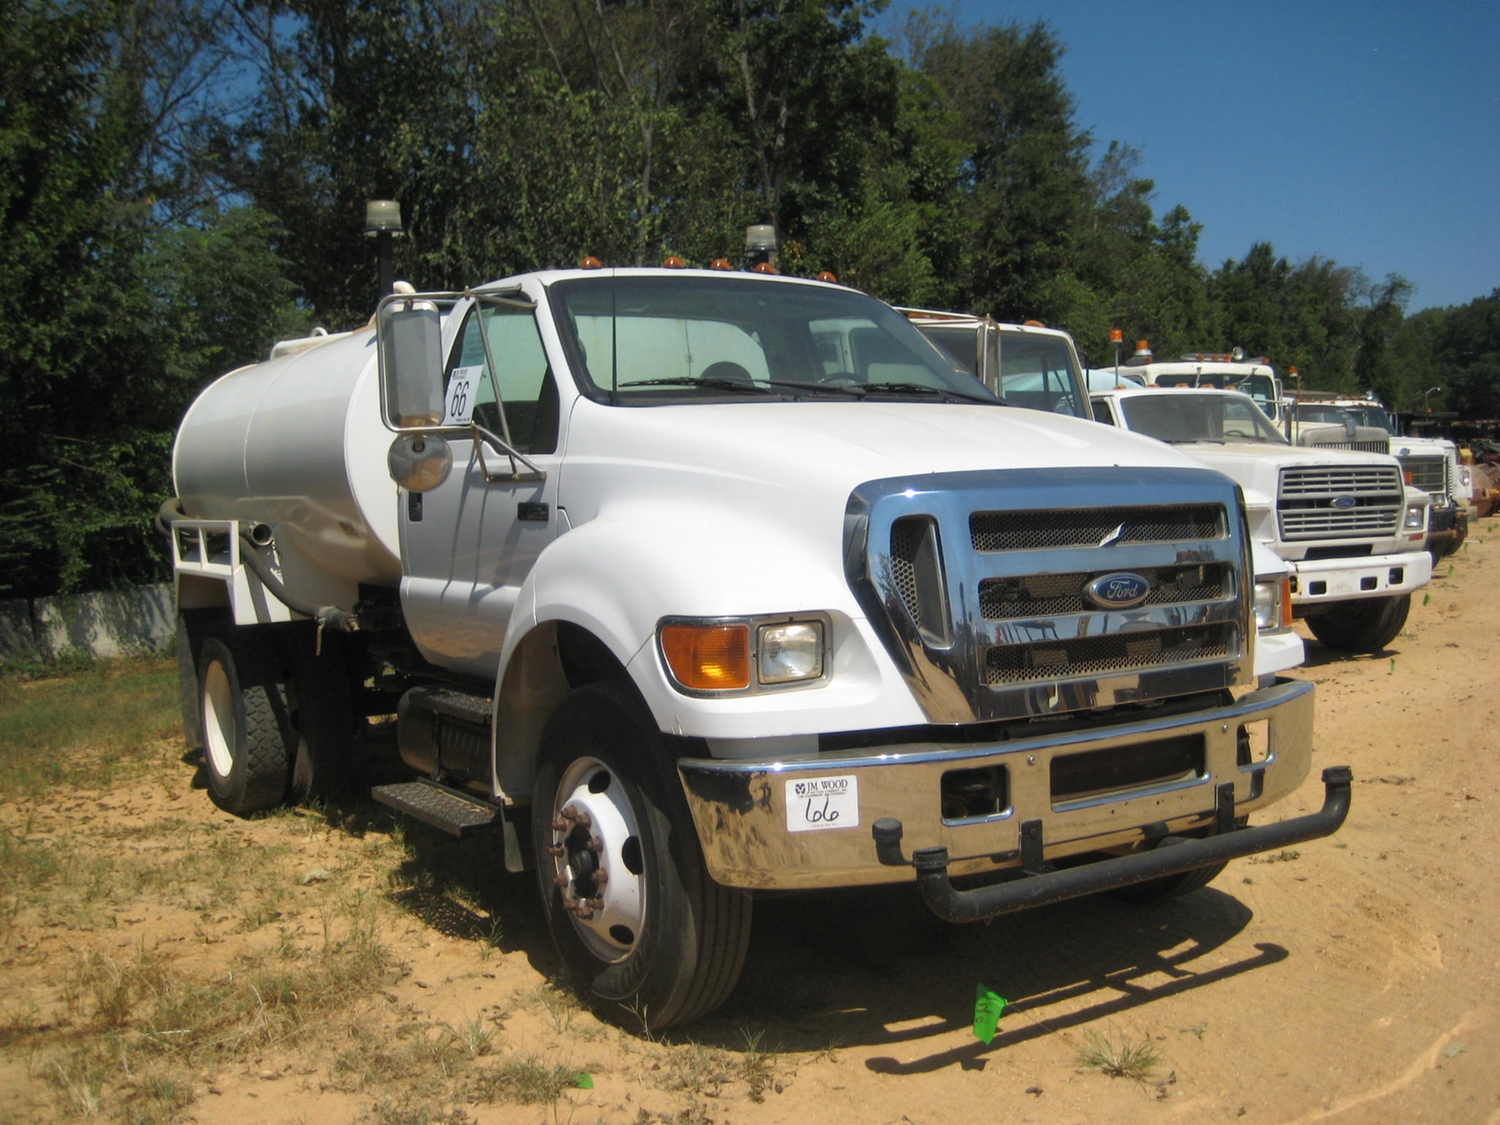 image 2 2005 ford f750 super duty s a water truck [ 1500 x 1125 Pixel ]